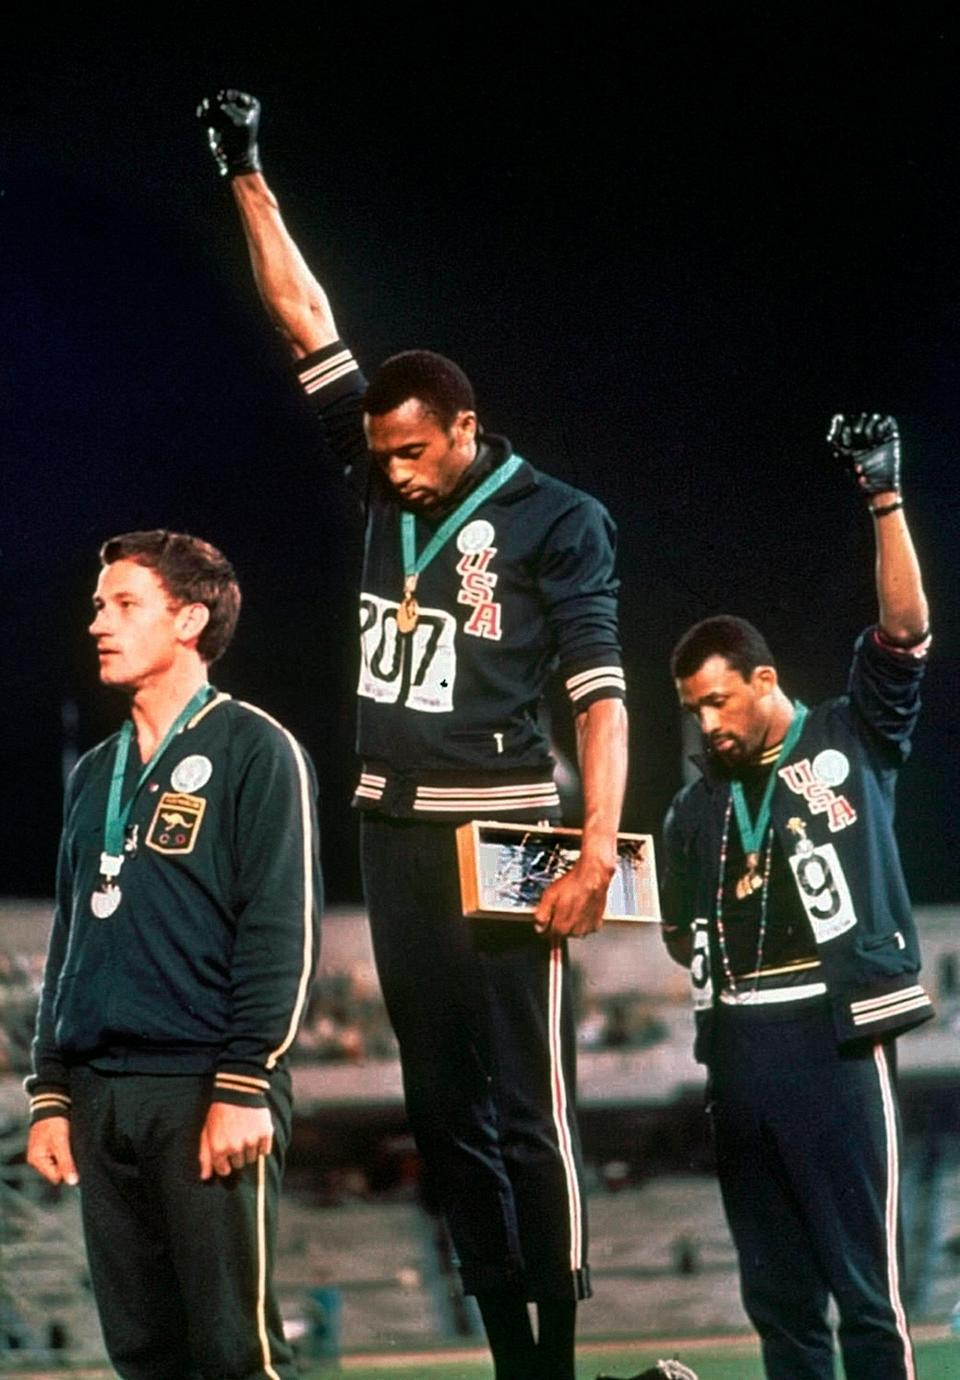 U.S. athletes Tommie Smith, center, and John Carlos extend gloved hands skyward in racial protest during the playing of national anthem at the 1968 Olympics.